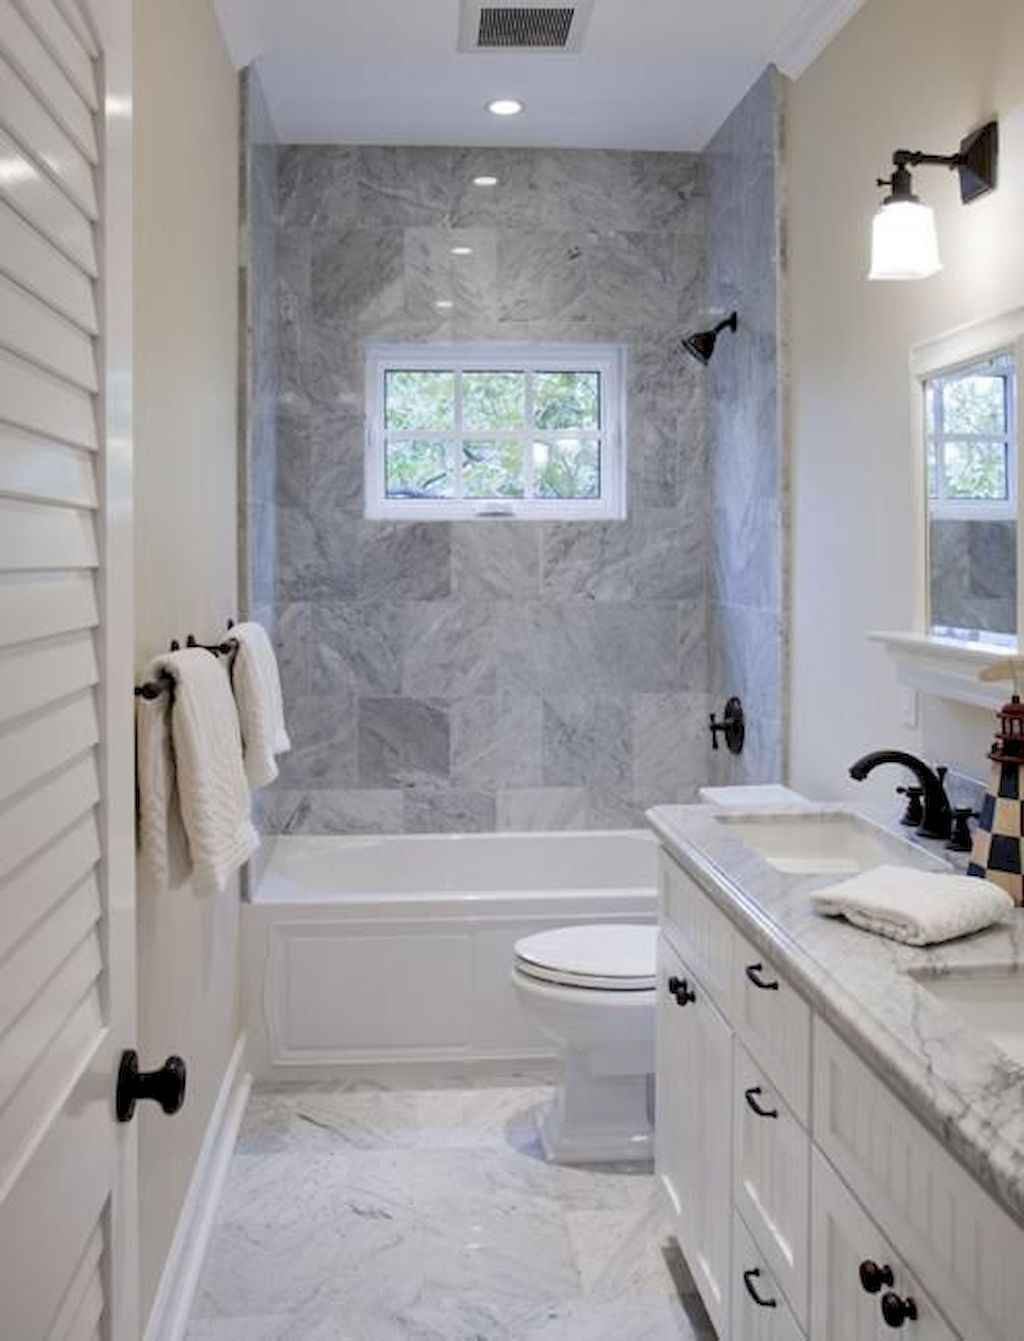 111 awesome small bathroom remodel ideas on a budget (3)